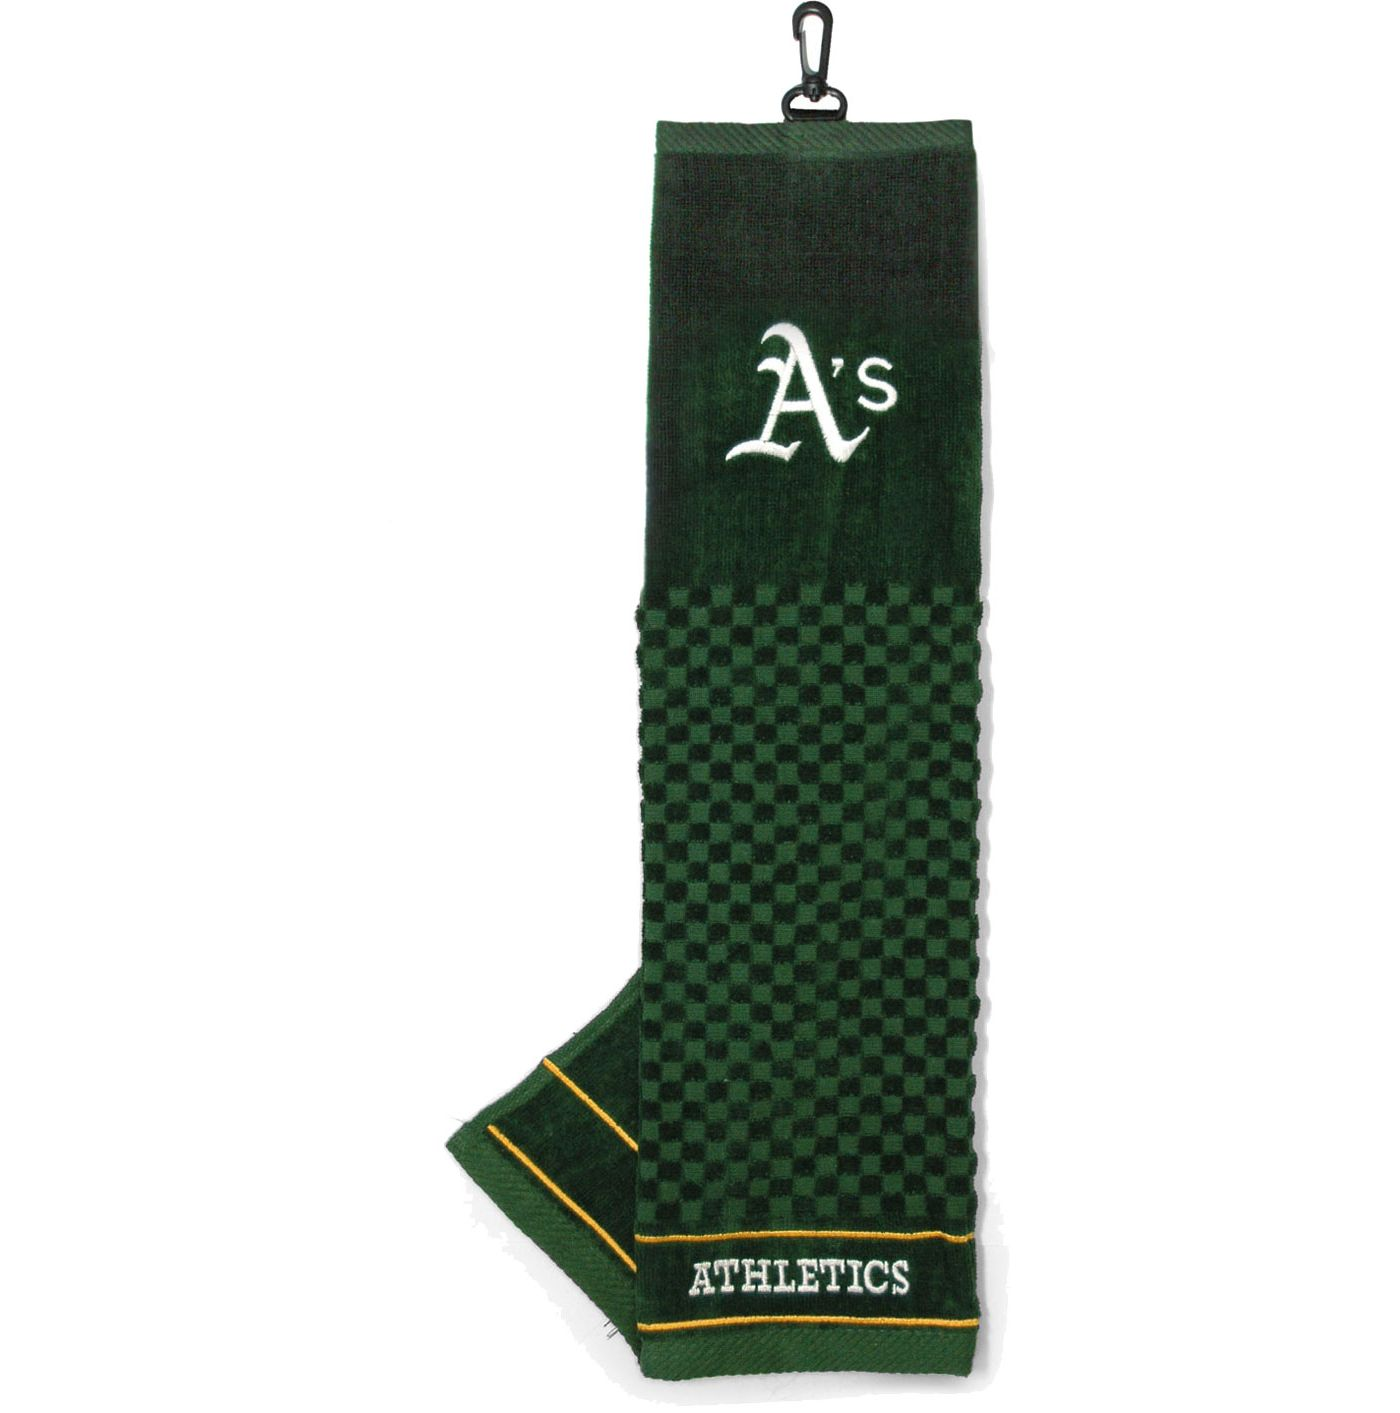 Team Golf Oakland Athletics Embroidered Golf Towel